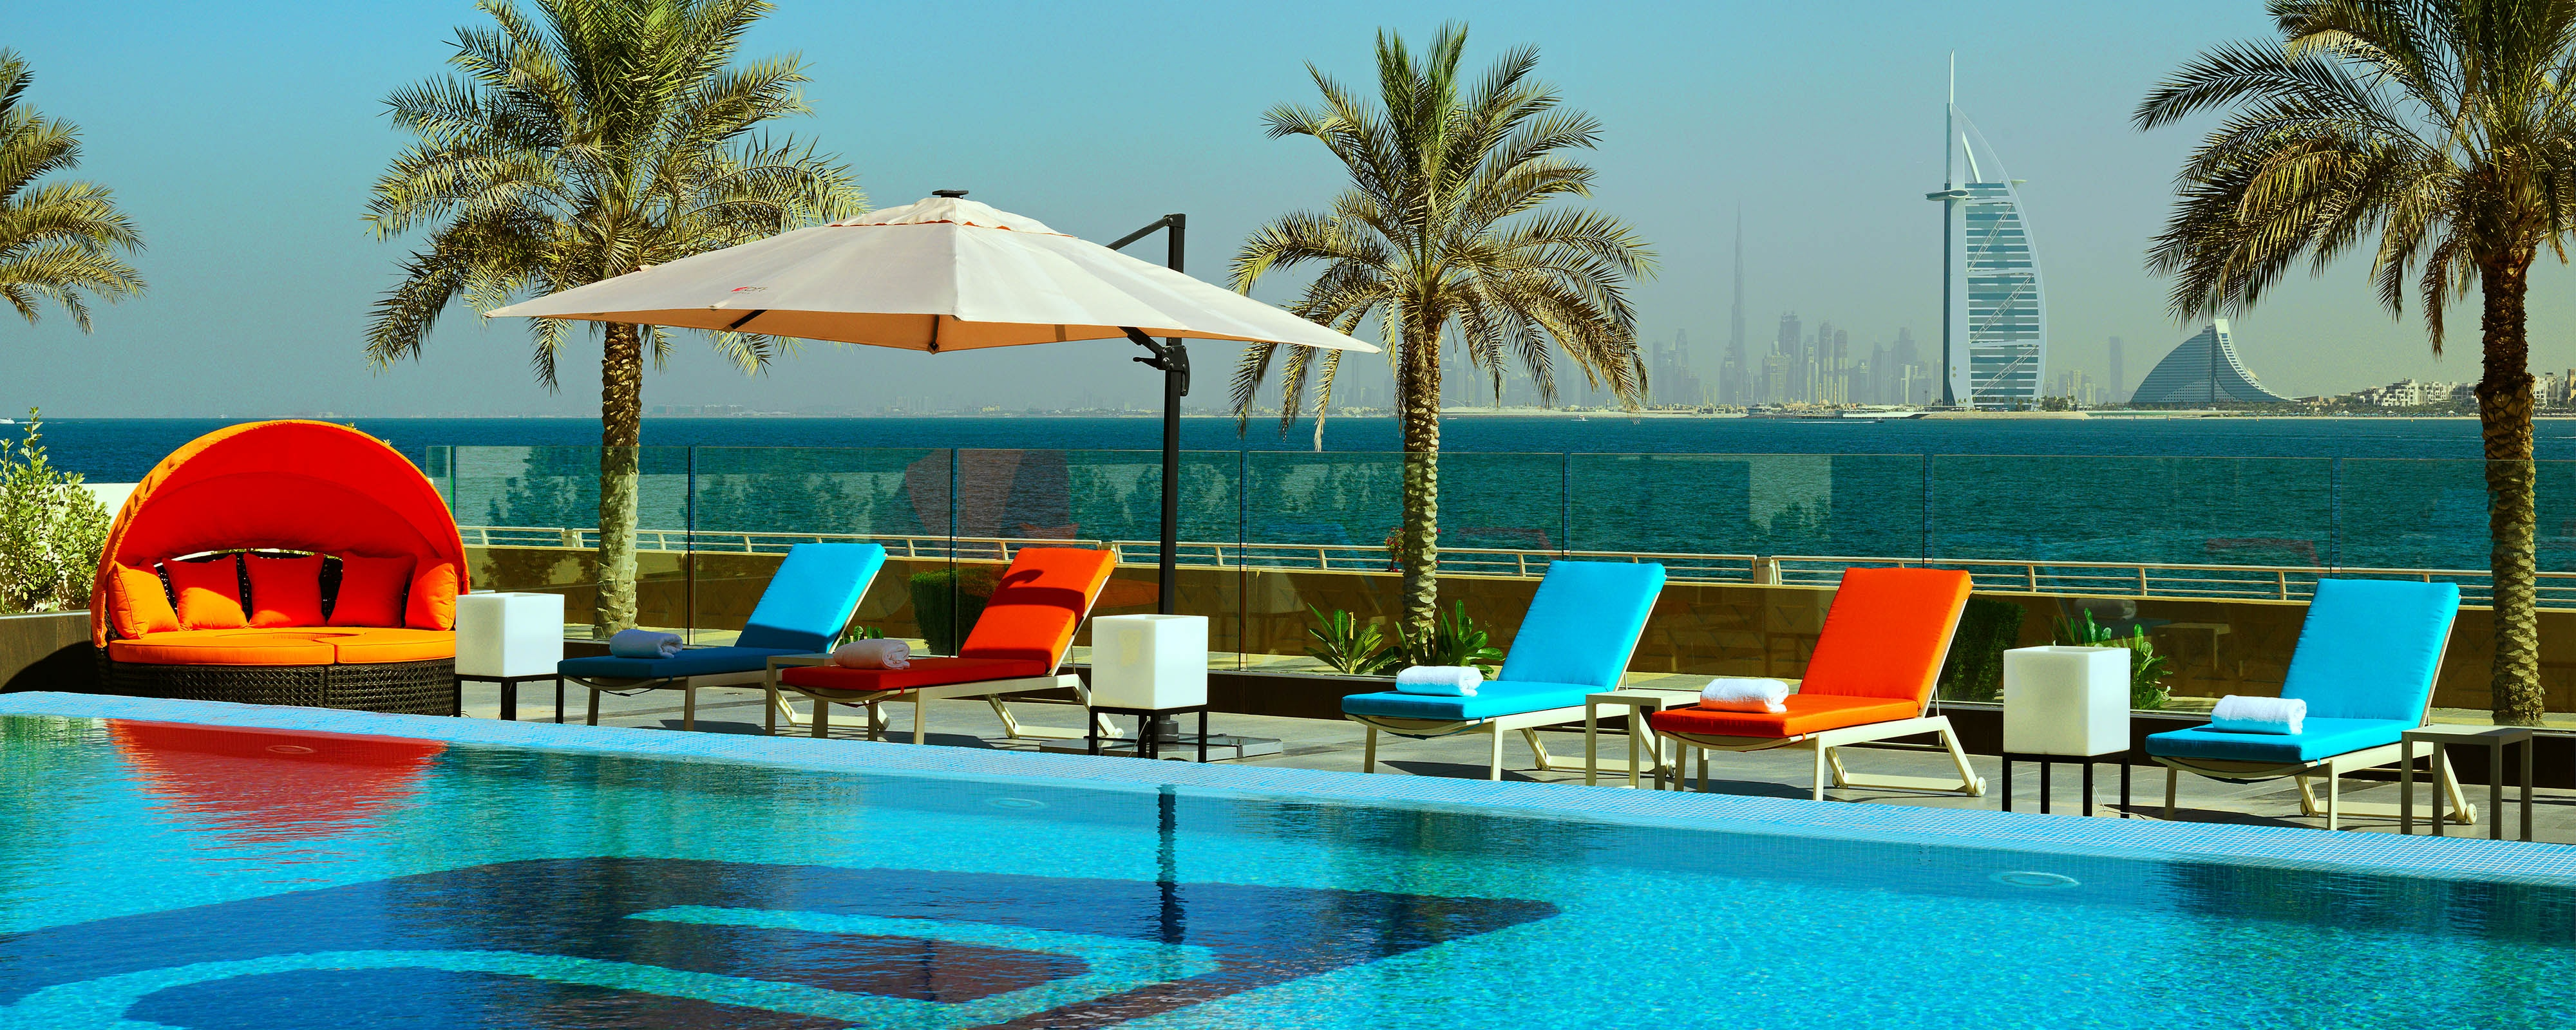 Boutique Hotel In Dubai Aloft Palm Jumeirah